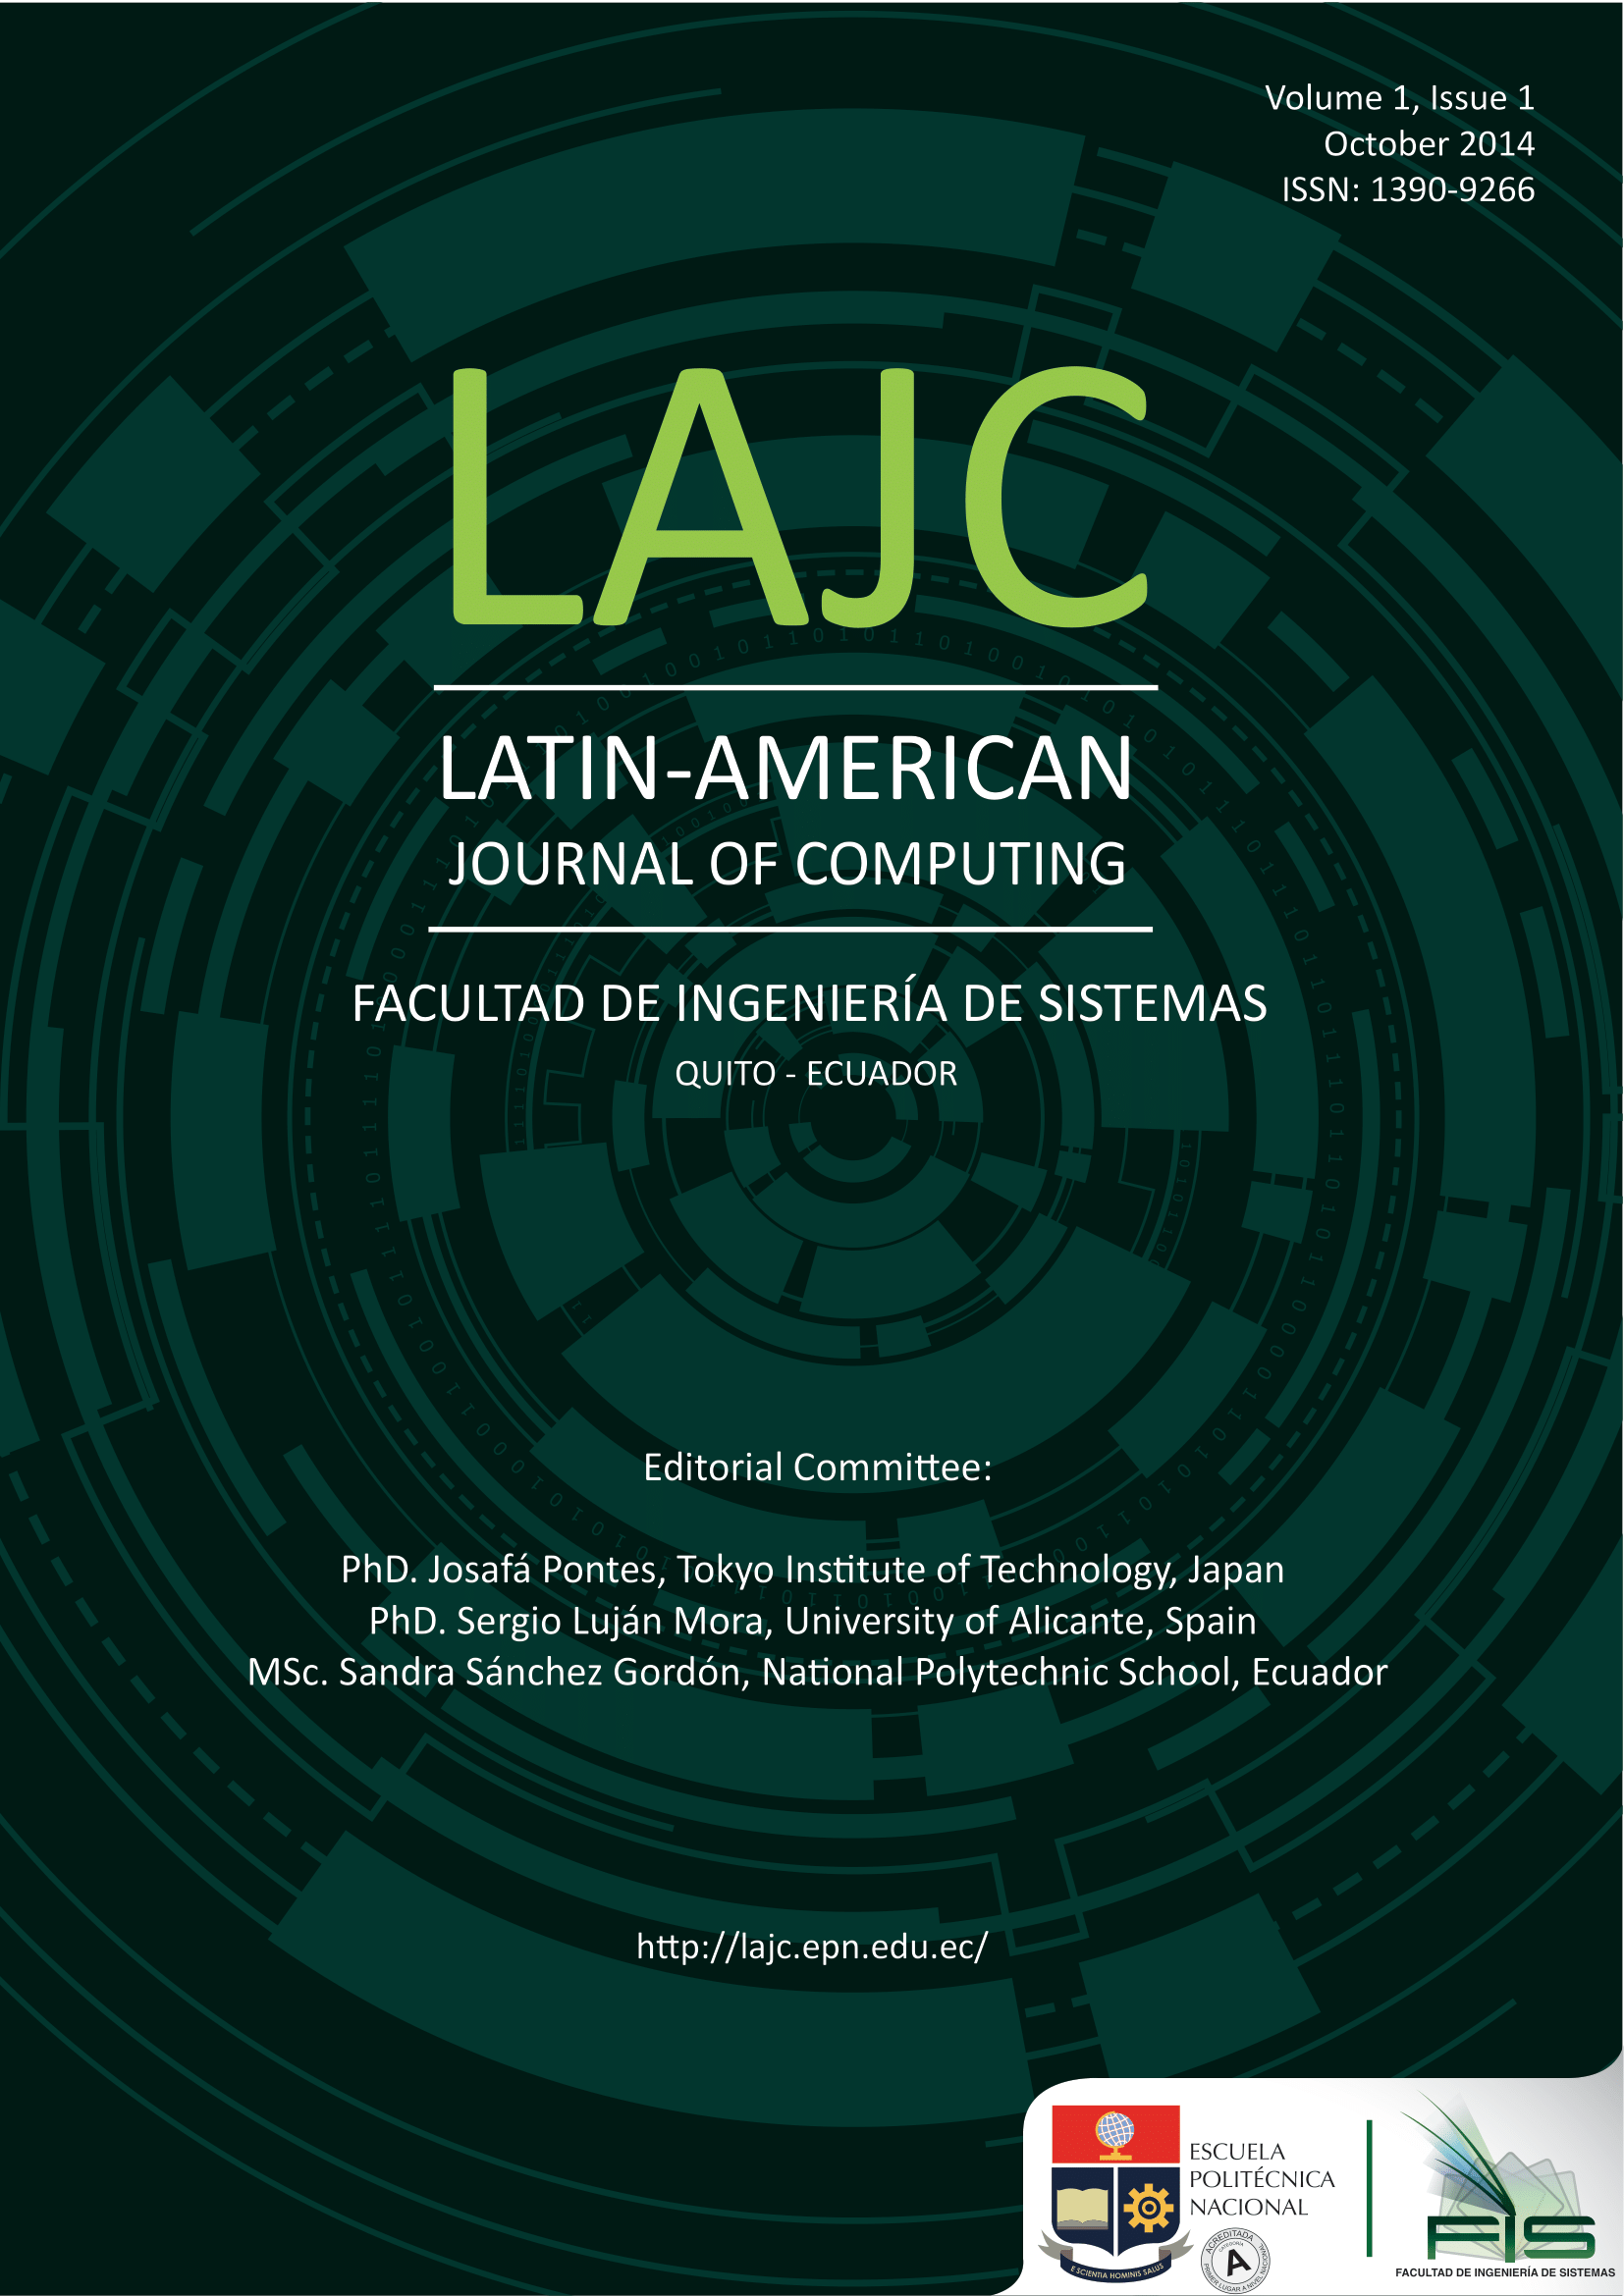 Cover Vol 1, No 1 (2014)